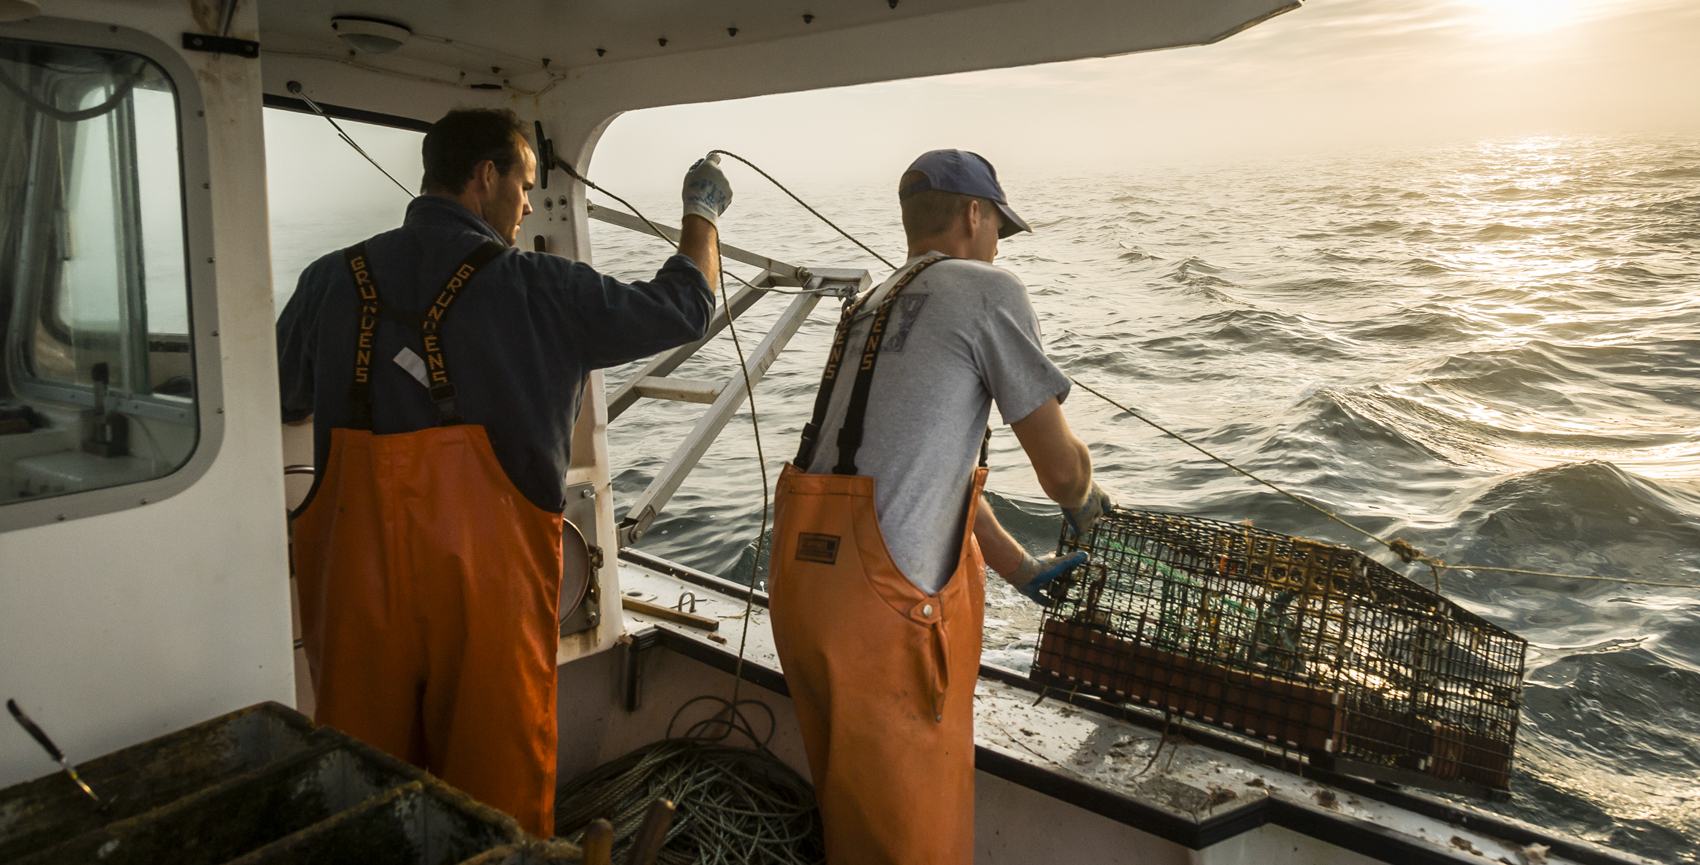 The not-for-profit health advocacy group The Fishing Partnership says it hopes, eventually, to make the drug naloxone a staple in every ship's medical kit. (Courtesy David Hill via The Fishing Partnership)